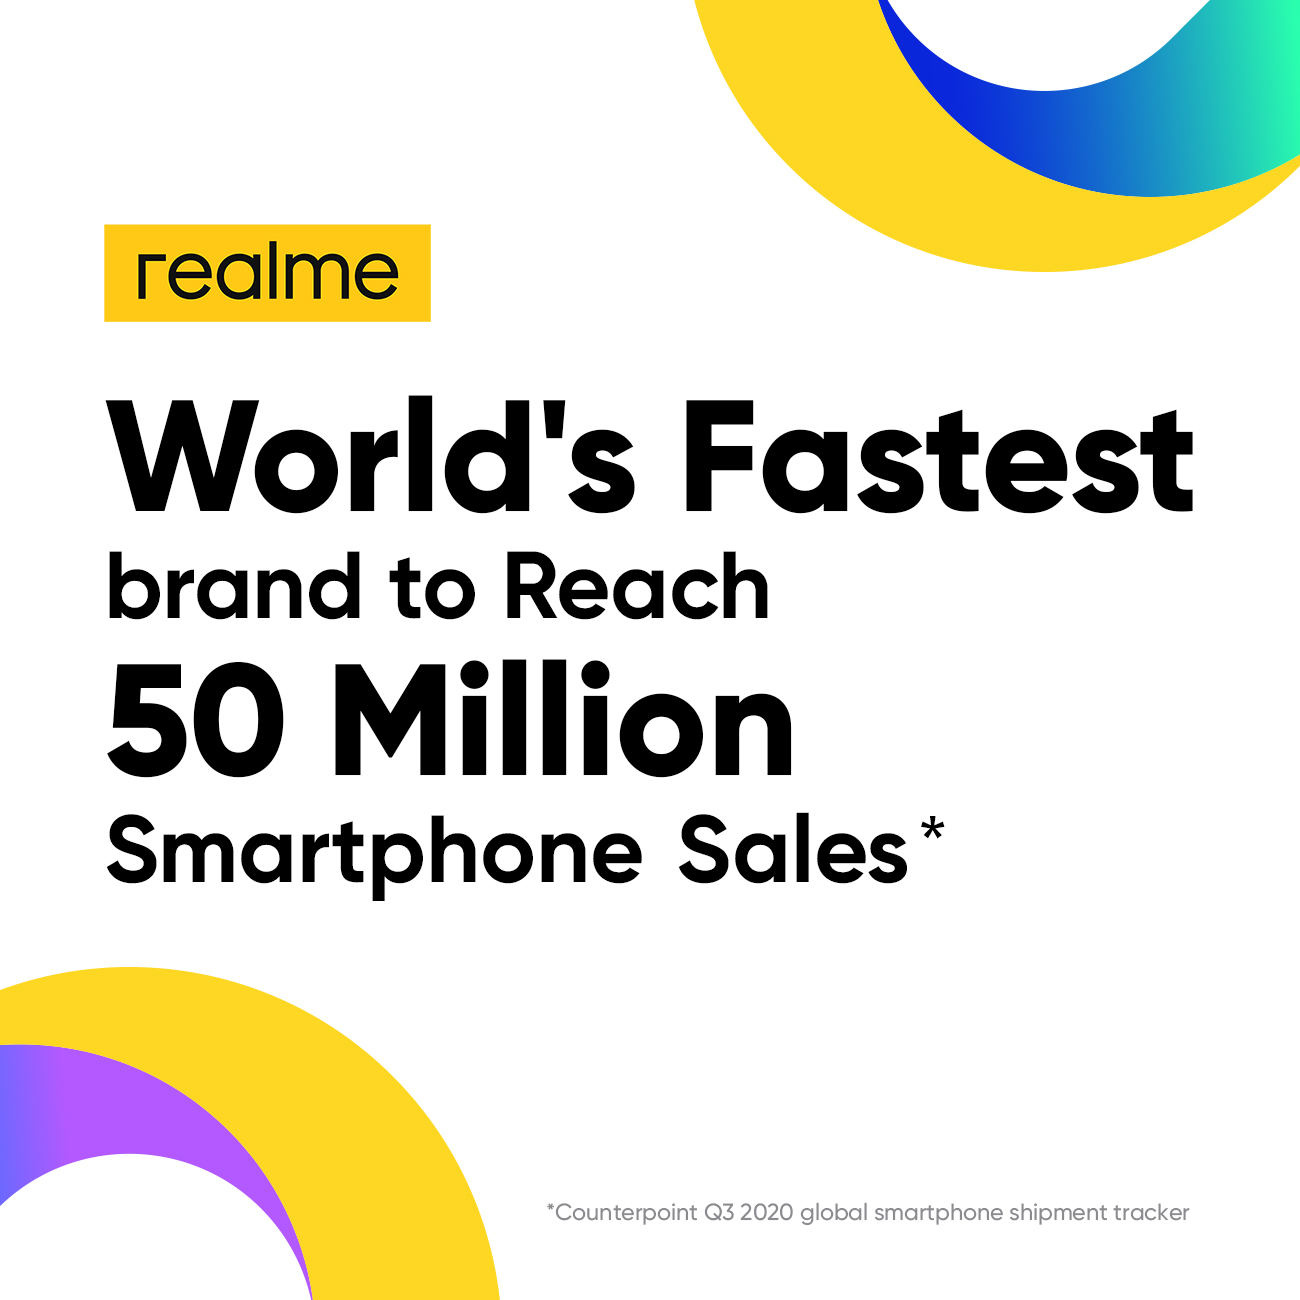 realme Becomes Fastest Smartphone Brand To Reach 50 Million Product Sales